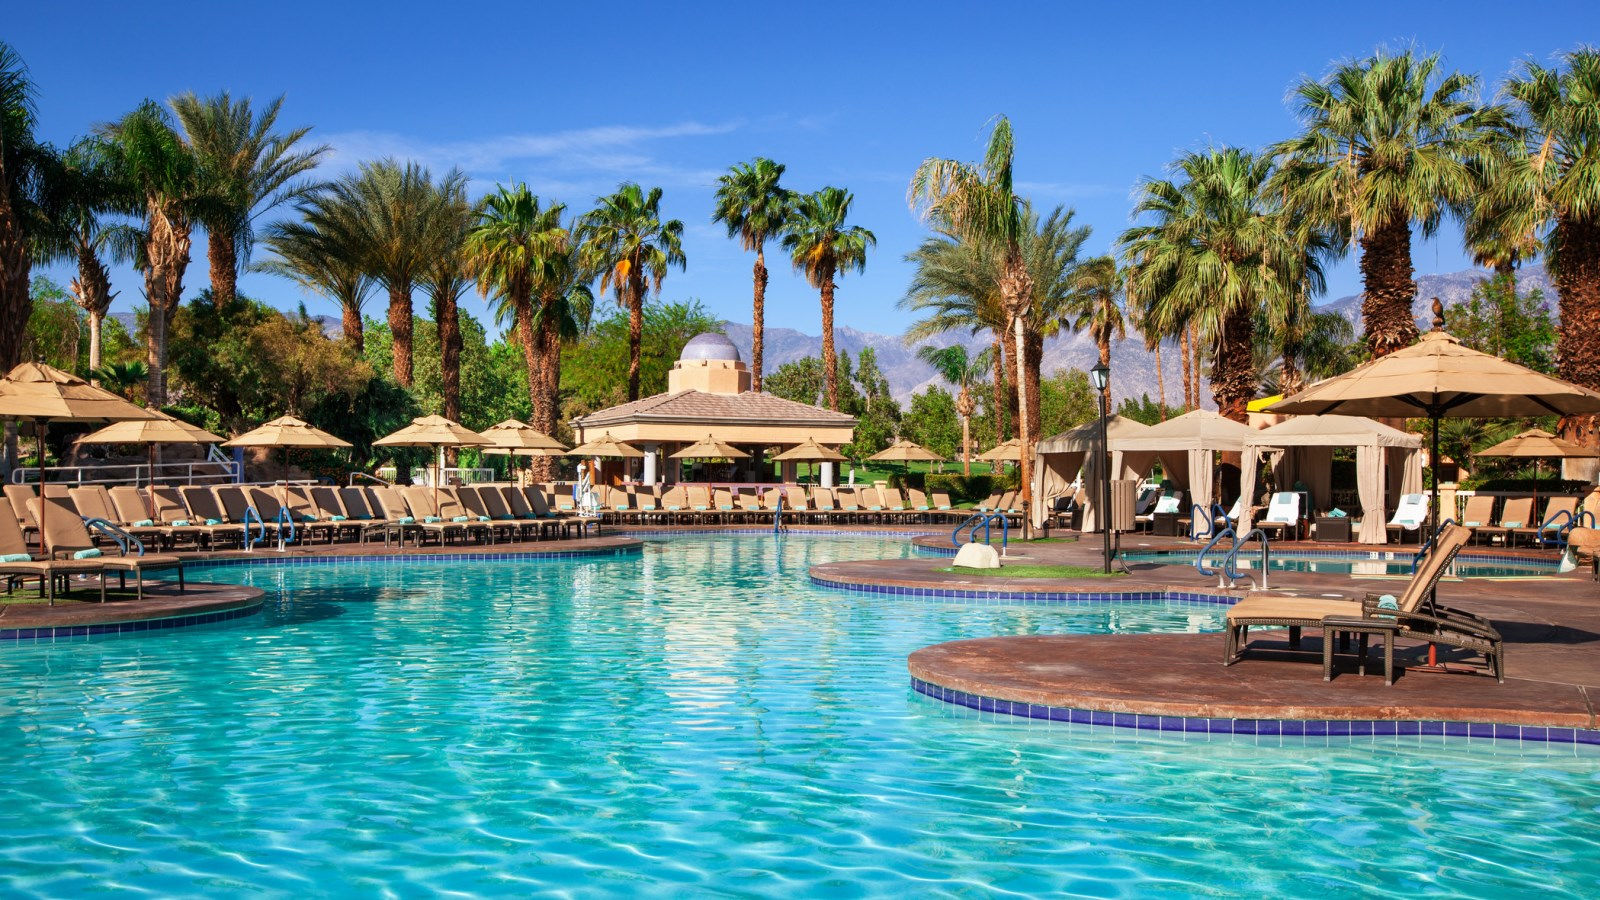 Pools - The Westin Mission Hills Golf Resort & Spa